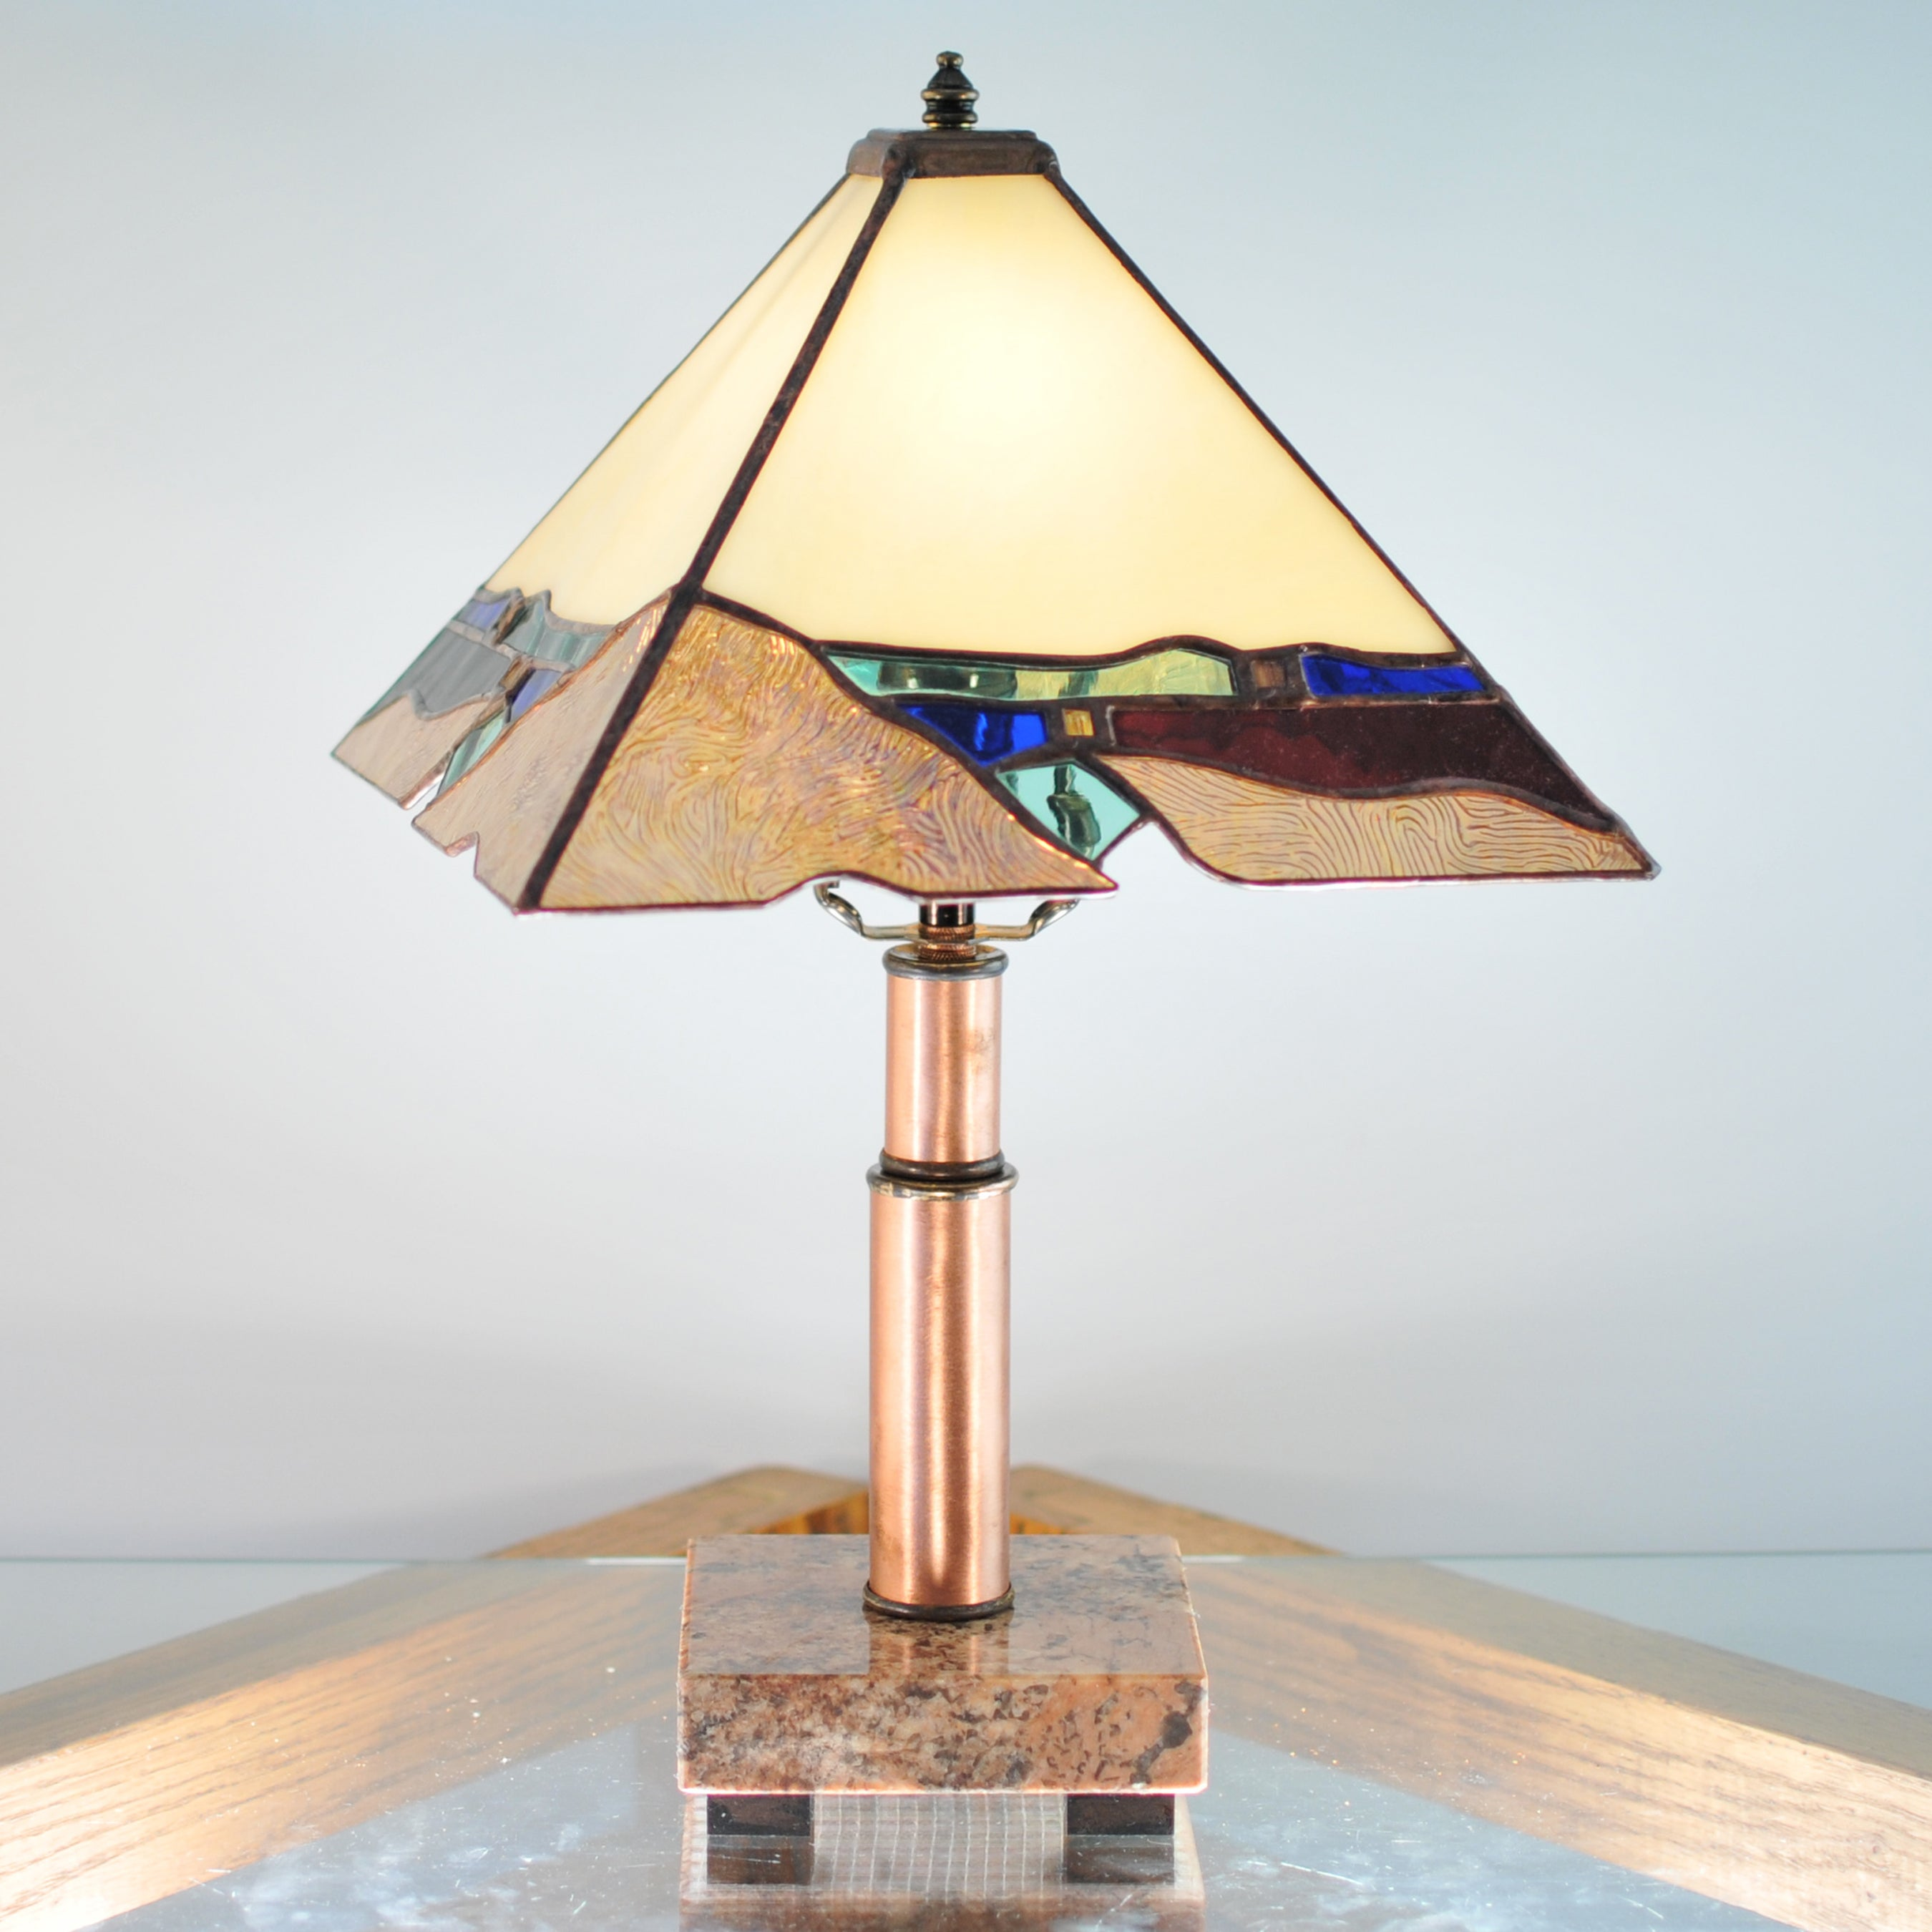 Small stained glass lamp with organic and architectural lines. Mission style / Prairie style.